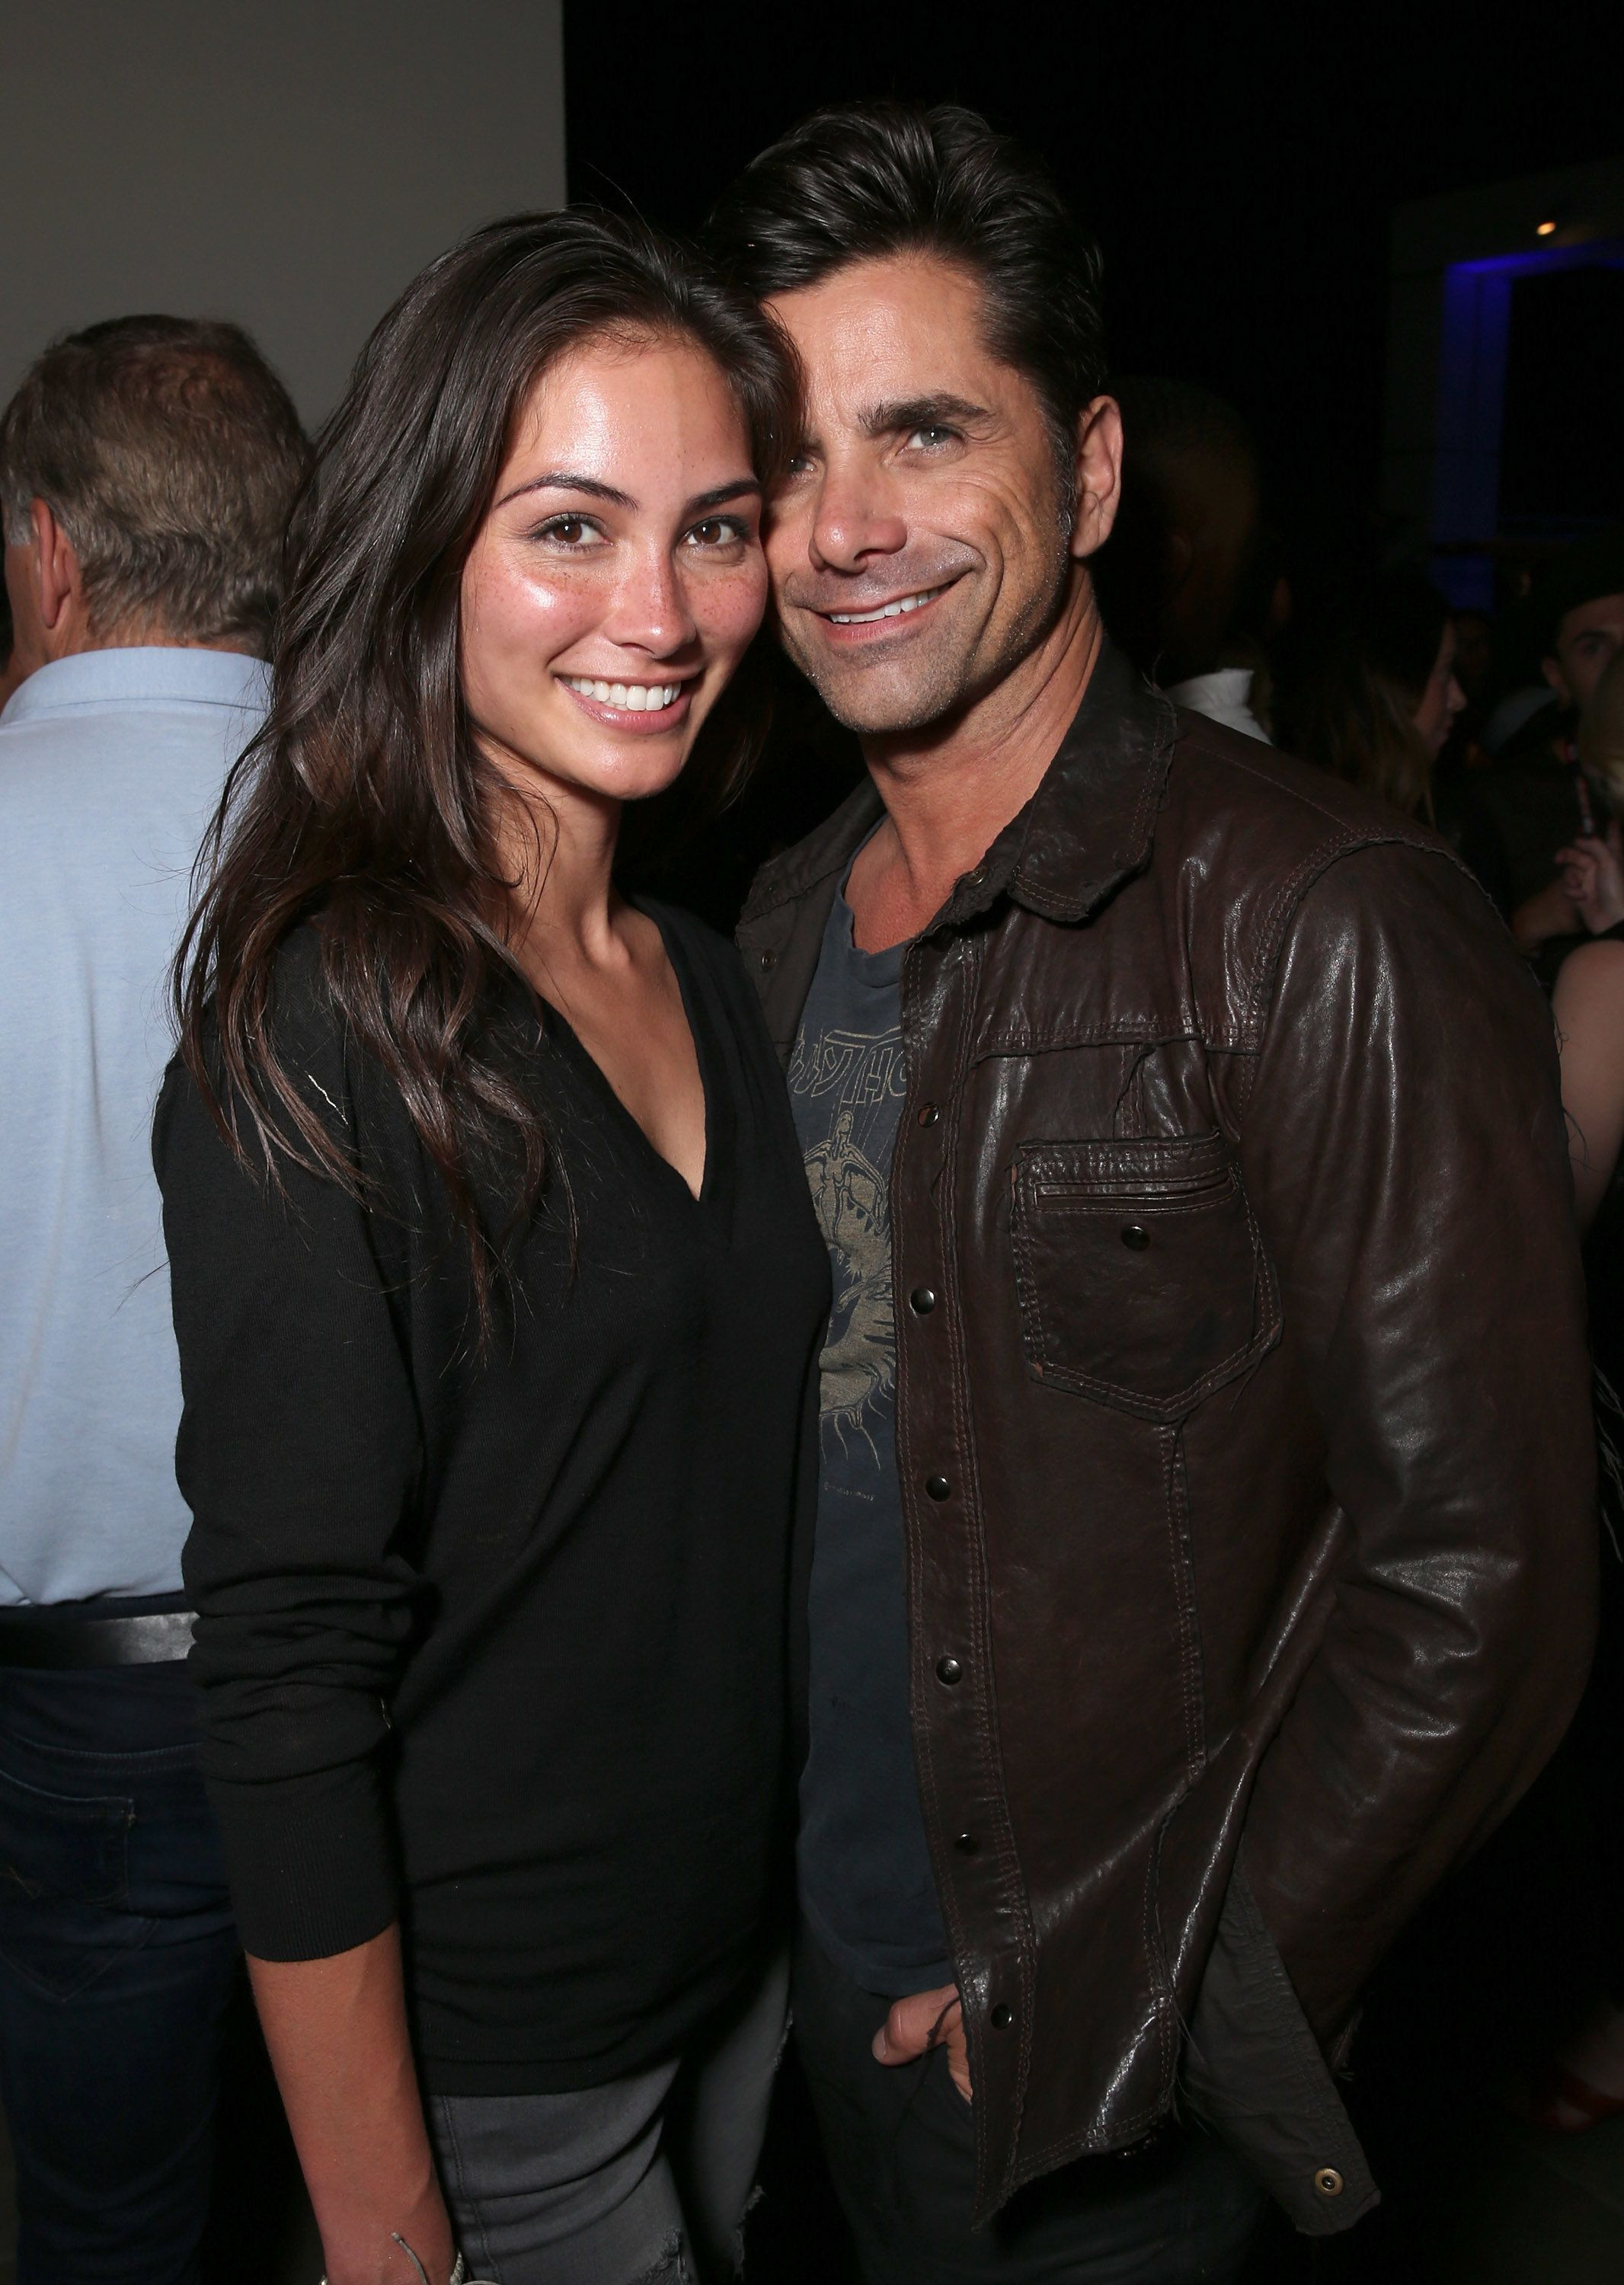 SAN DIEGO, CA - JULY 22:  Caitlin McHugh and John Stamos attend the Comic-Con International 2016 - 20th Century Fox Party at Andaz Hotel on July 22, 2016 in San Diego, California.  (Photo by Todd Williamson/Getty Images)